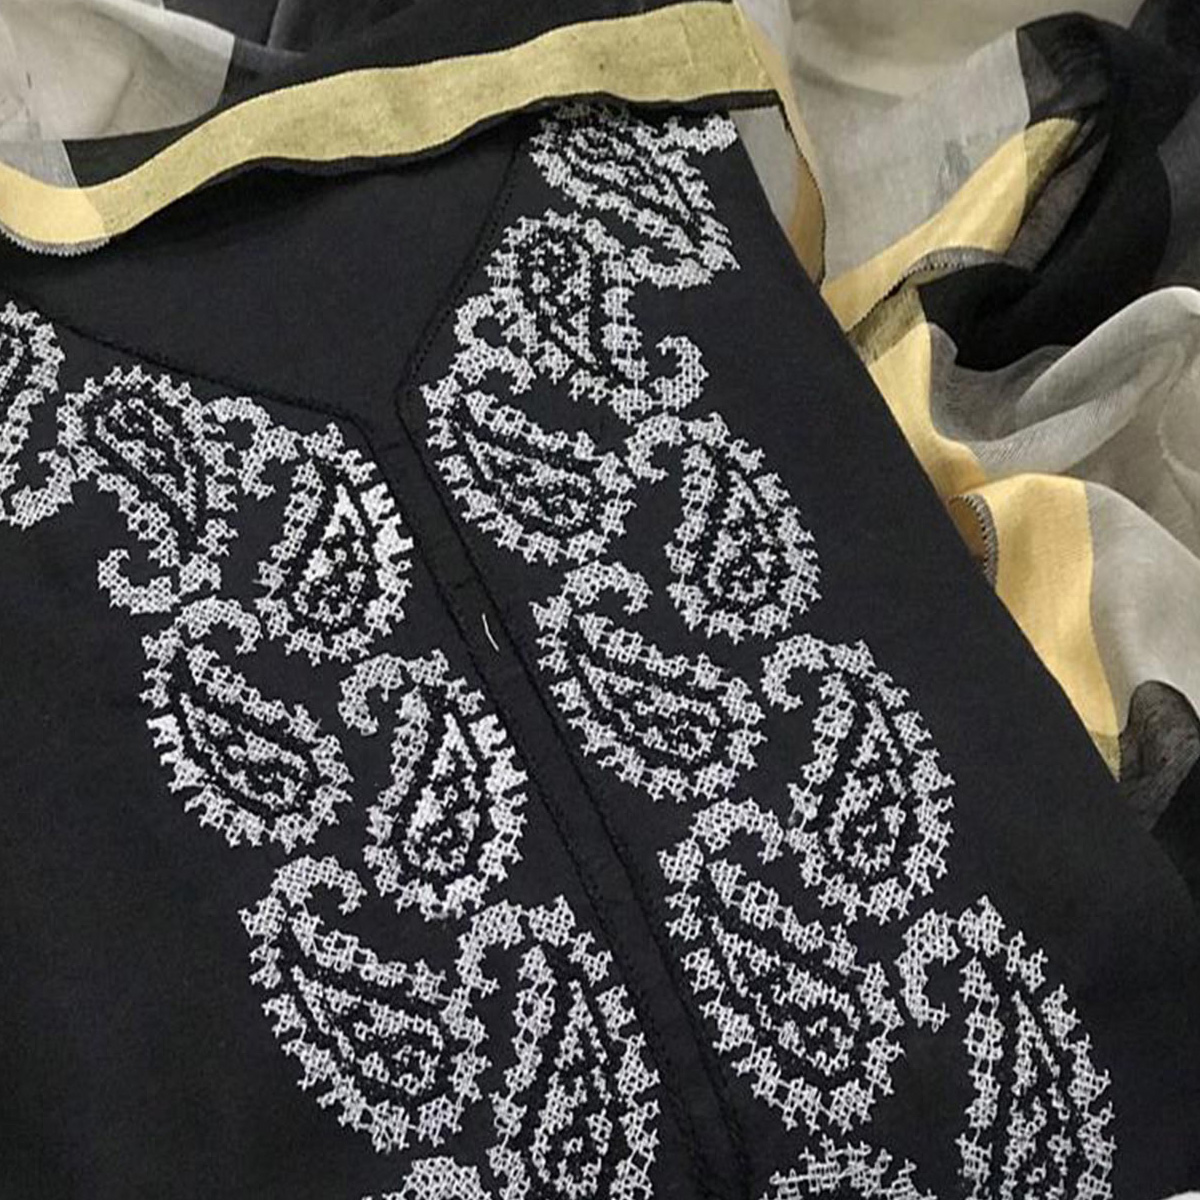 Ravishing Black Colored Casual Wear Embroidered Chanderi Cotton Dress Material